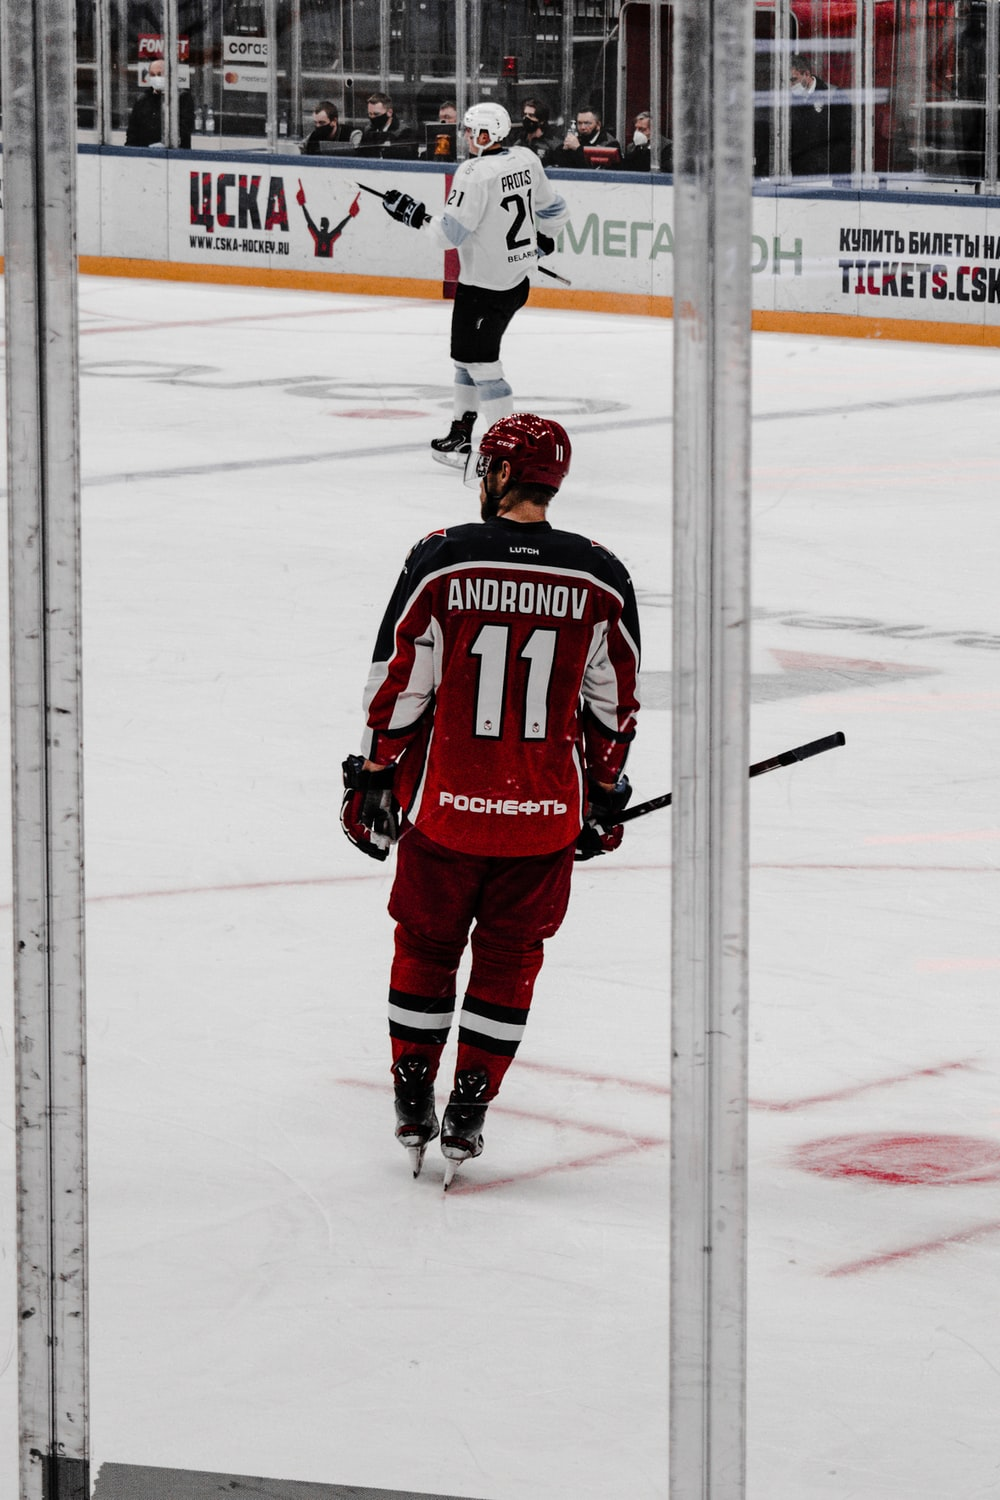 man in red and white ice hockey jersey